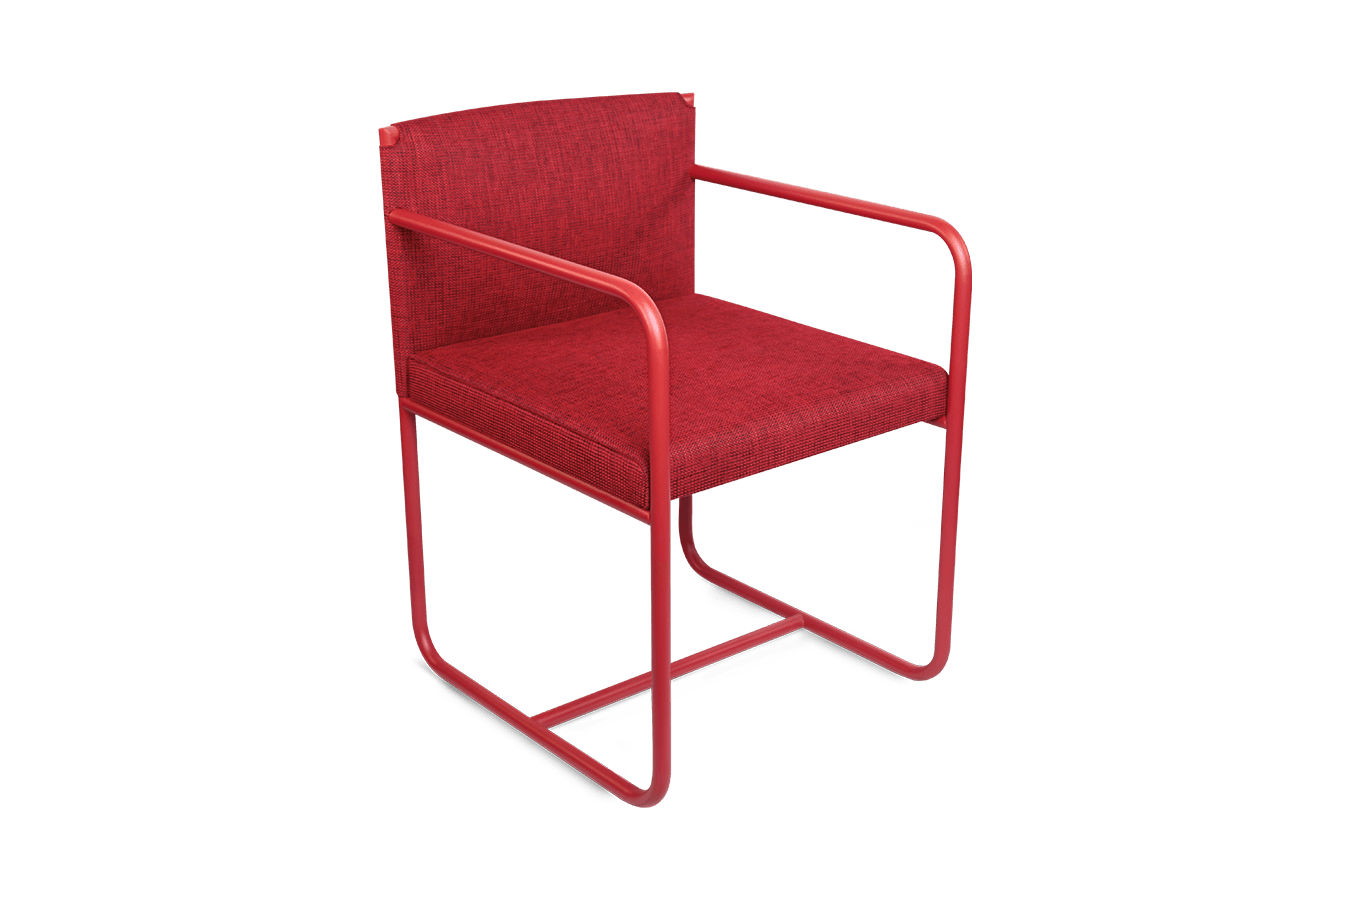 mindly dehomecratic chair